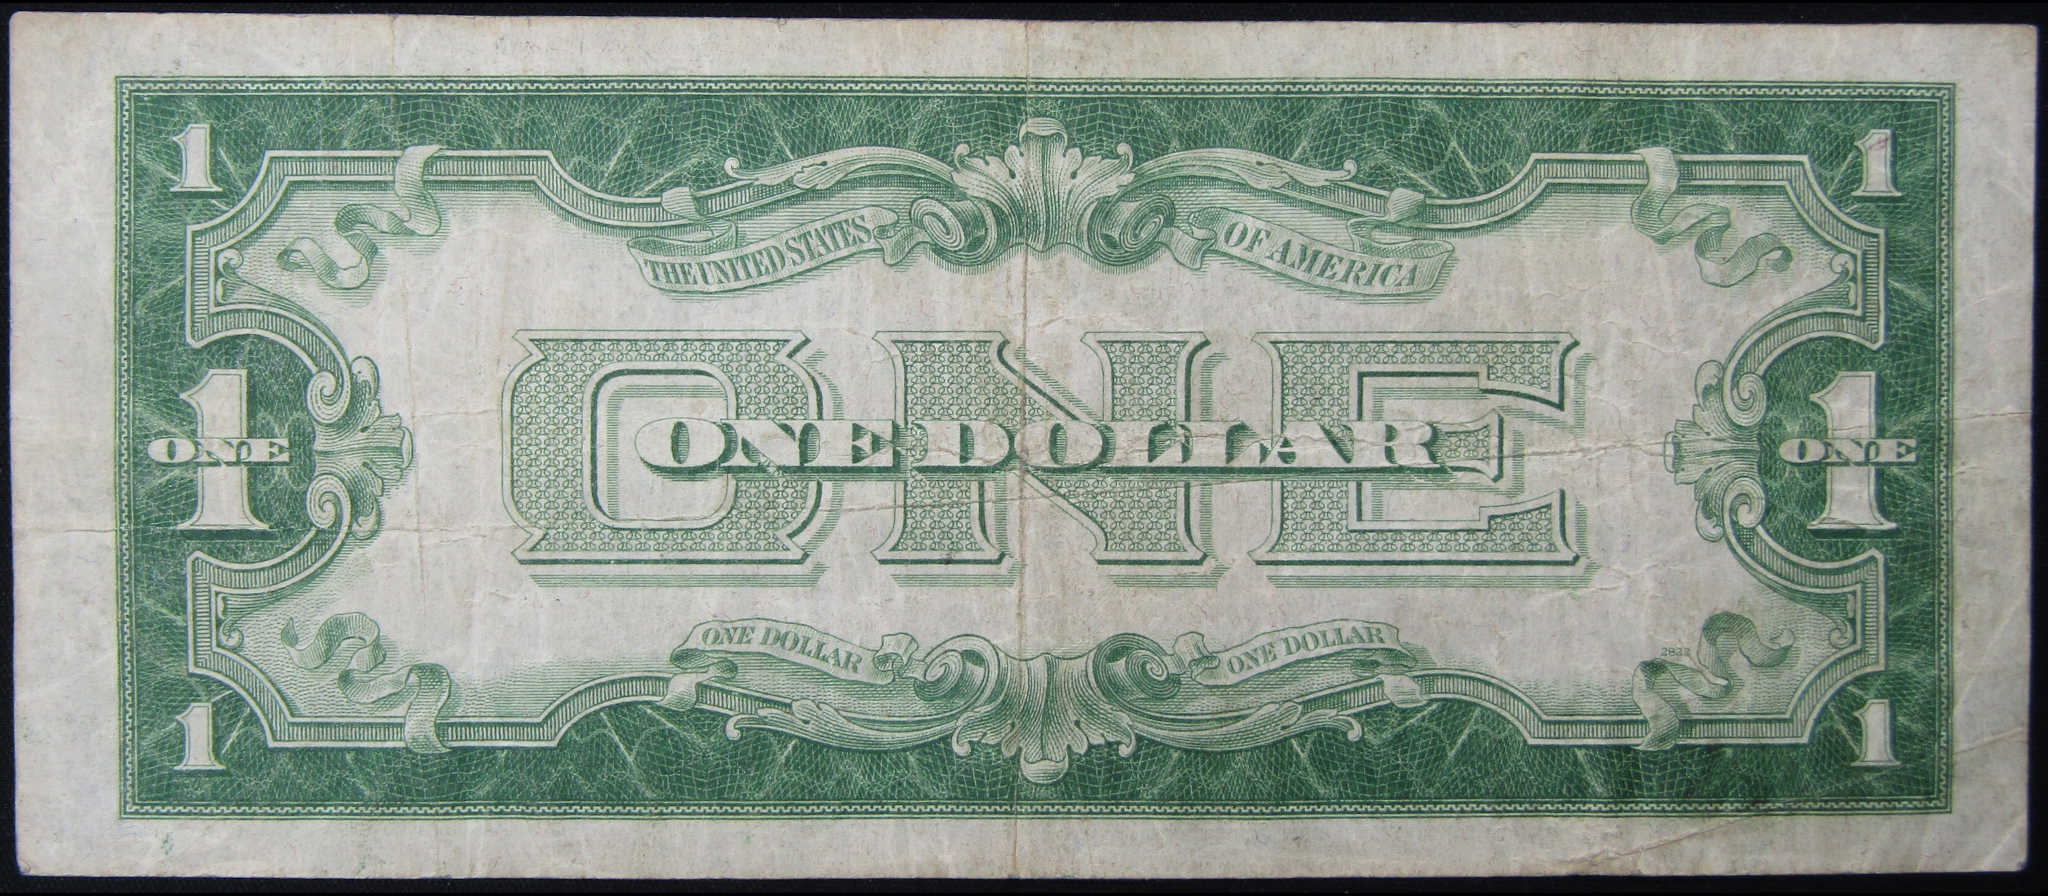 1934 $1 Silver Certificate Funnyback Small Size Currency VG Very Good